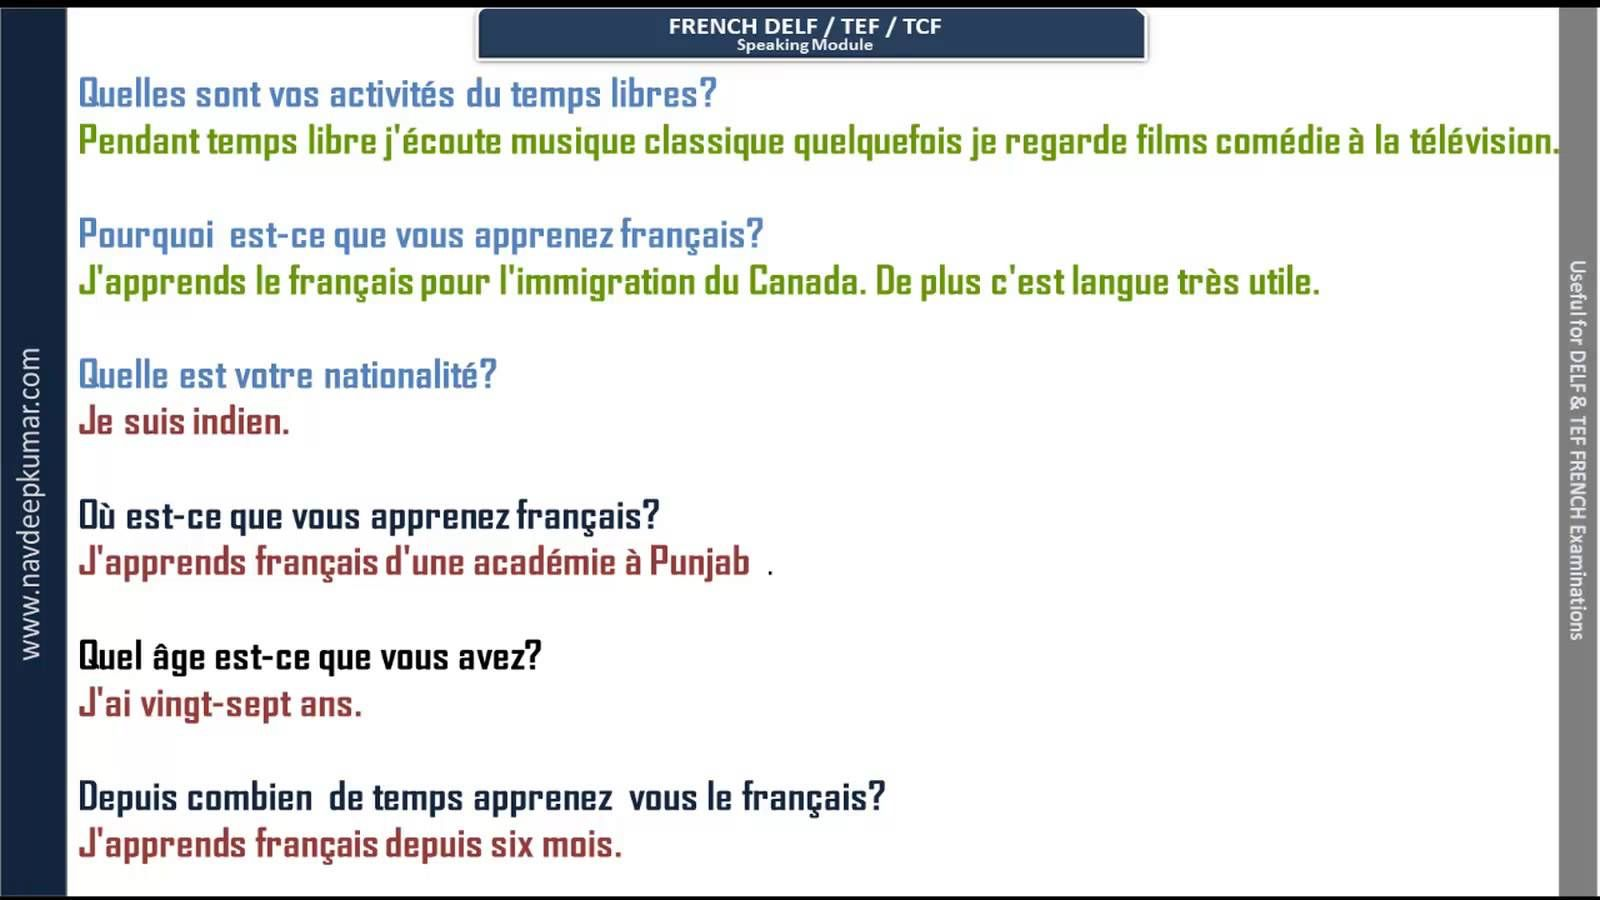 French Delf Speaking Questions With Audio With Images Learn